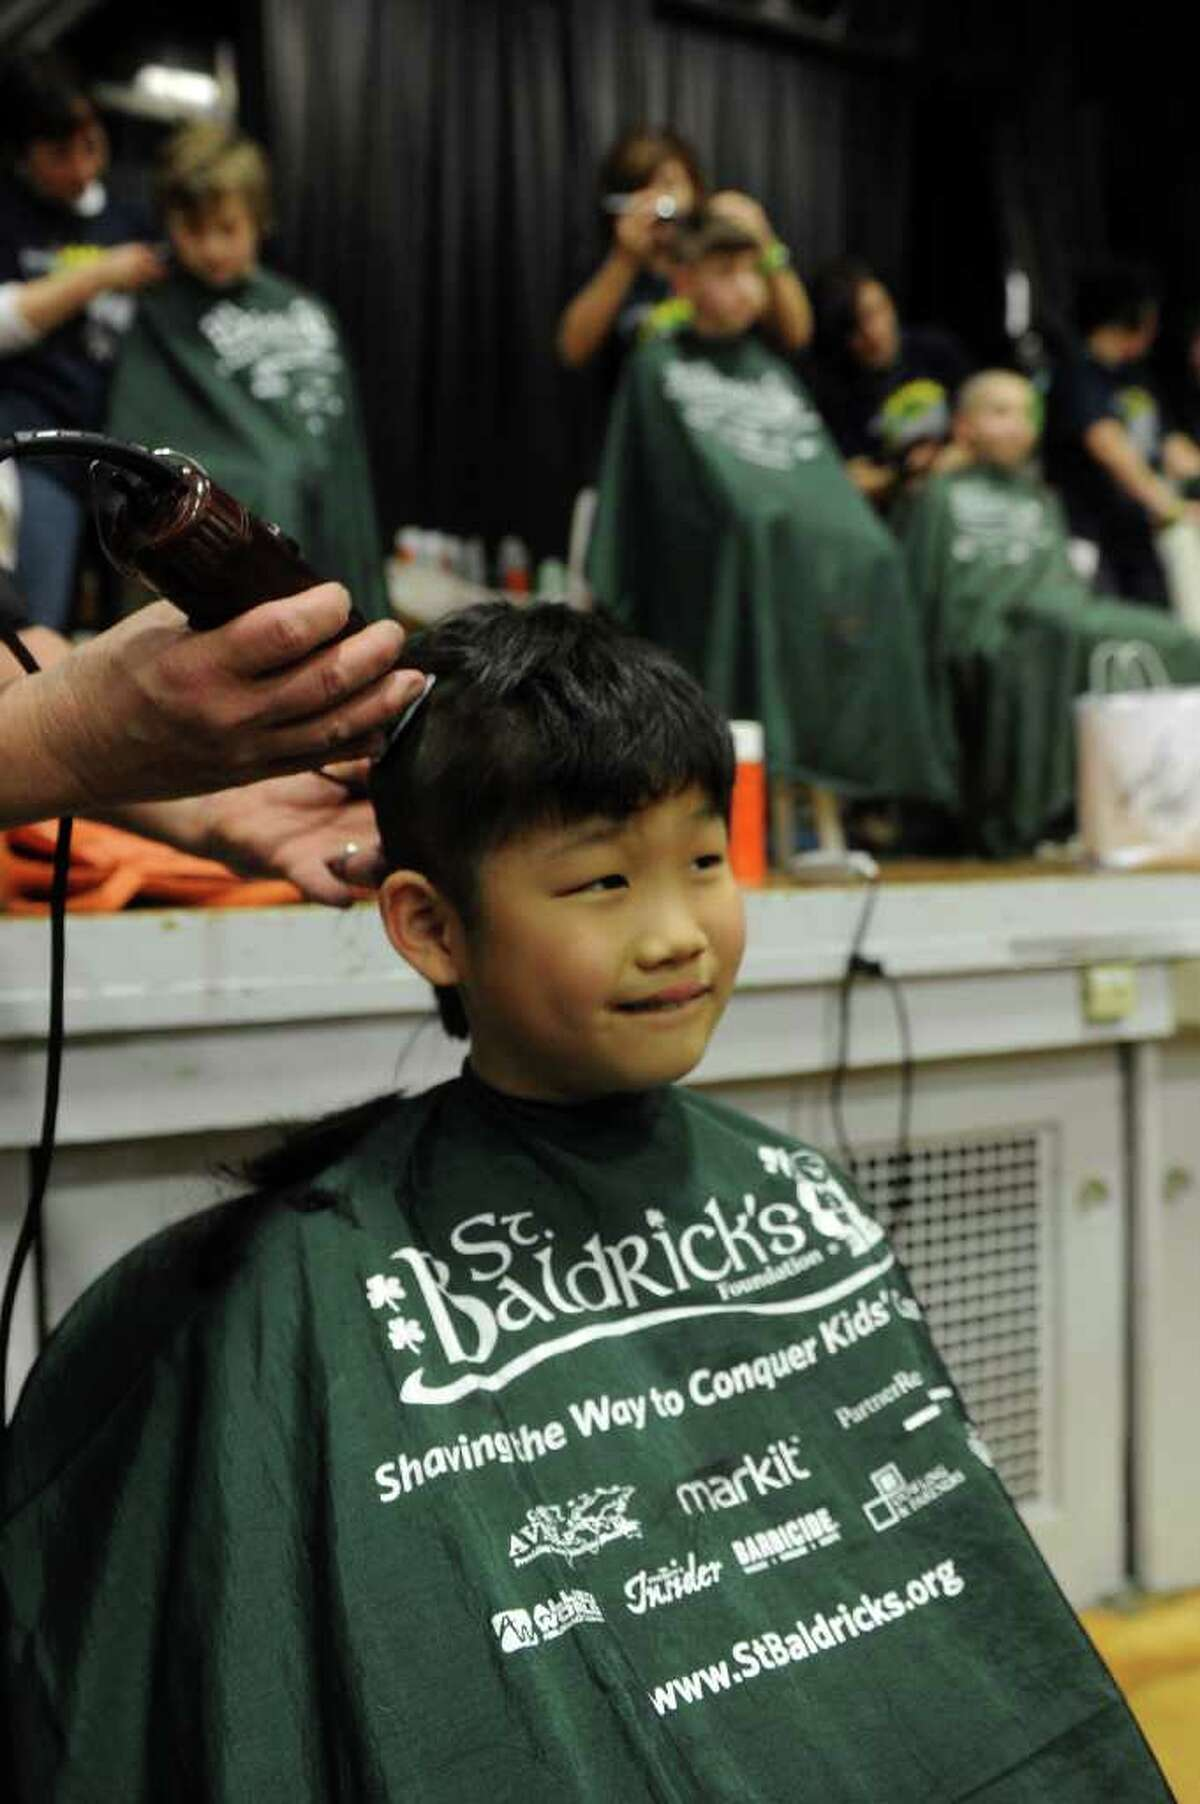 Jae Leighton, 9, gets his hair saved during Friday's St. Baldrick's fundraiser for children with cancer on March 11, 2011.